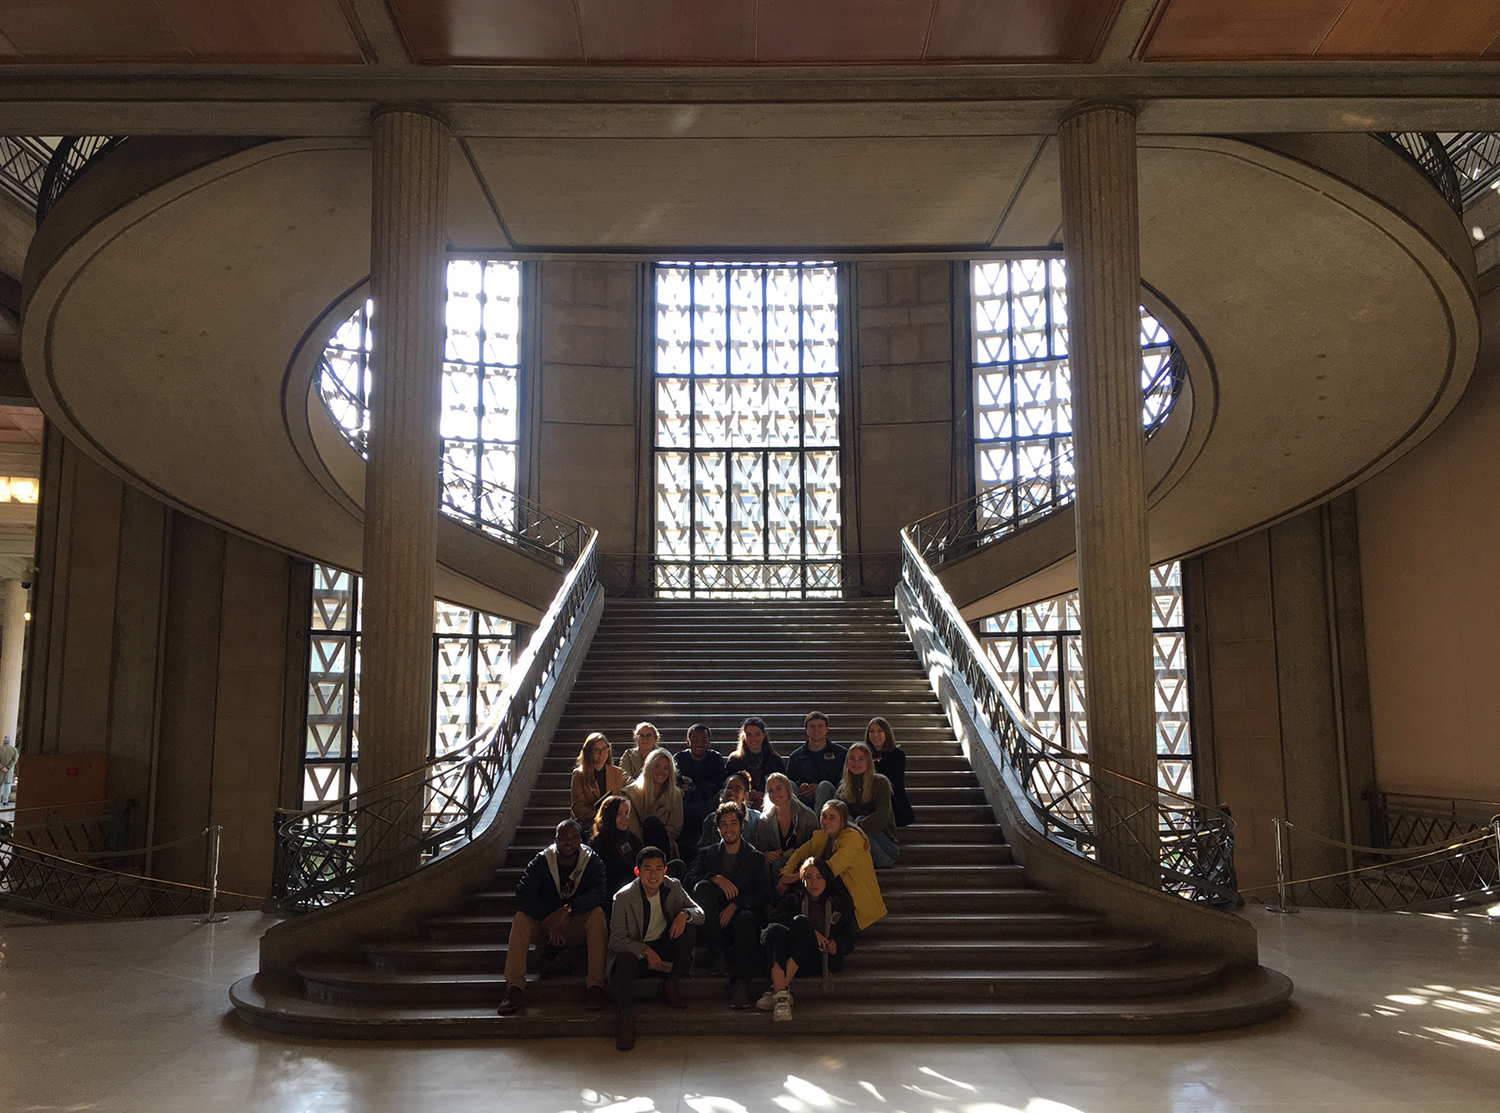 A group of people sitting on a staircase.